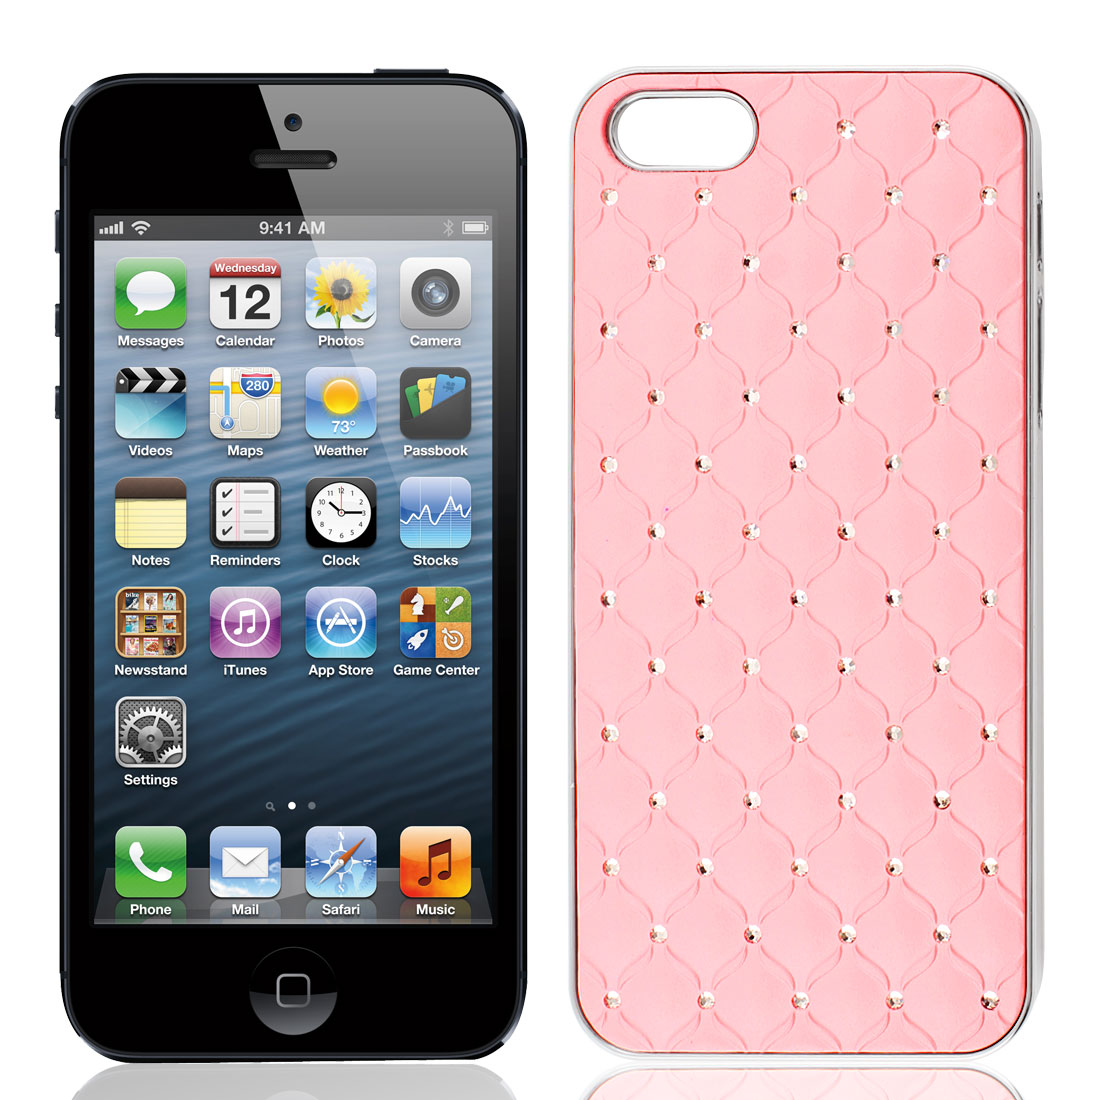 Sparkle Bling Rhinestone Grid Hard Back Case Cover Pink for iPhone 5 5G - image 1 of 1